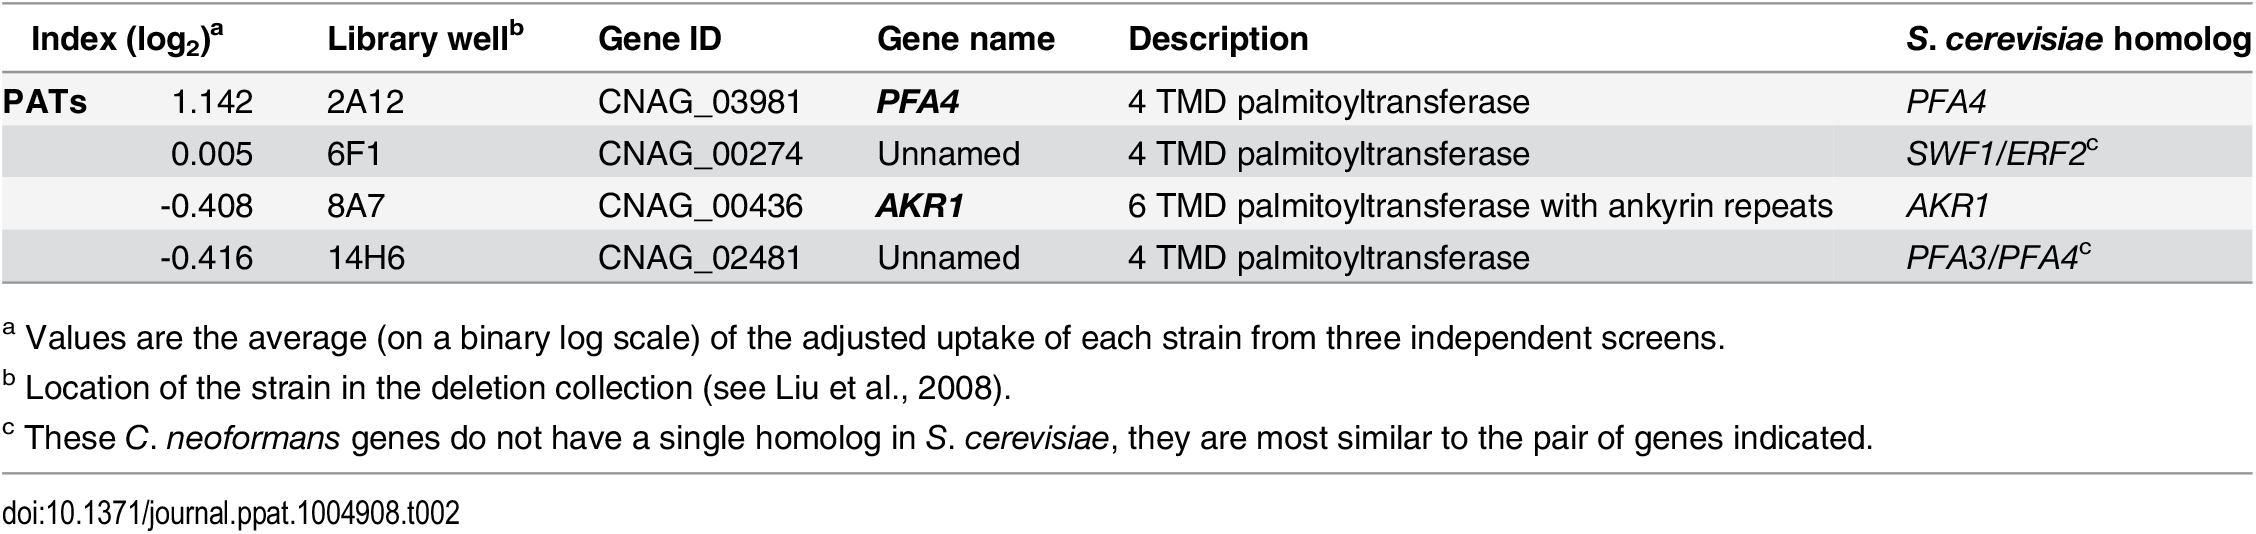 Comparison of putative PATs present on the deletion collection.